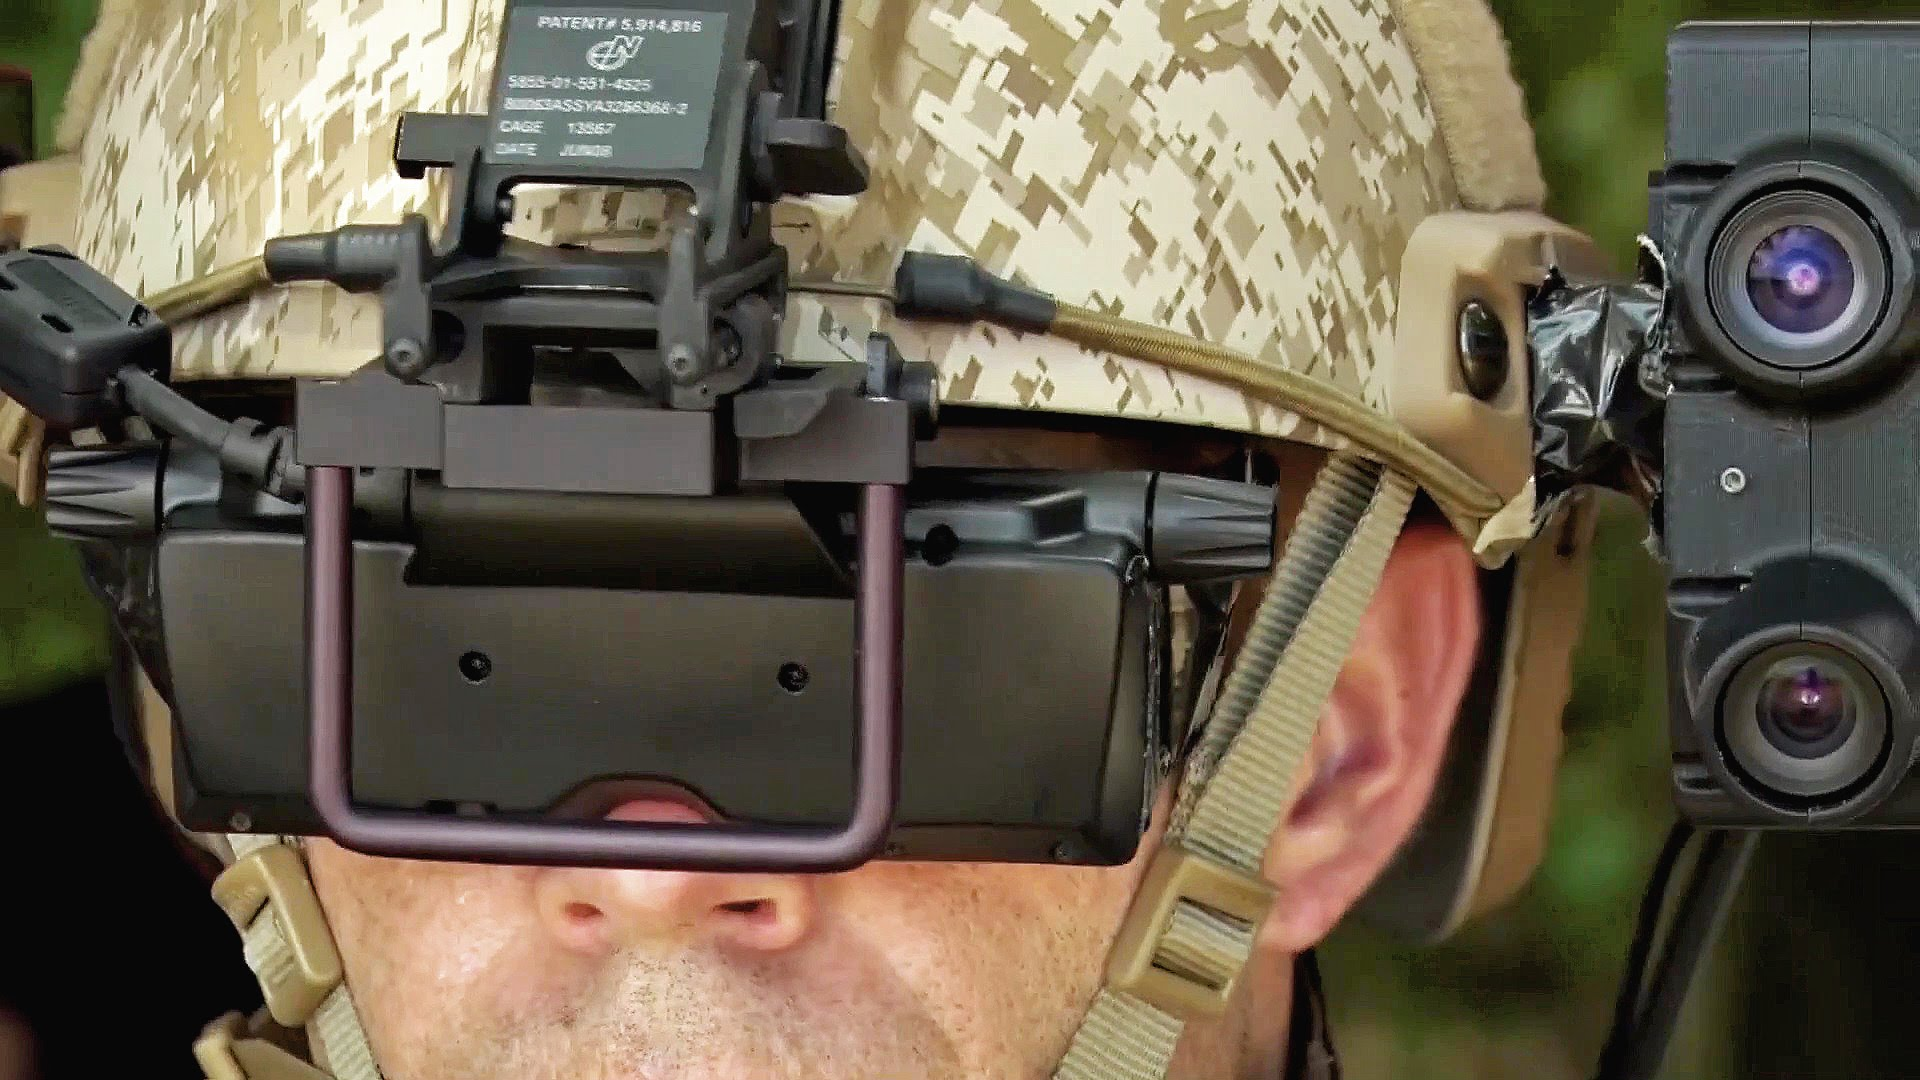 US Military's Futuristic Augmented Reality Battlefield – Augmented Immersive Team Trainer (AITT)